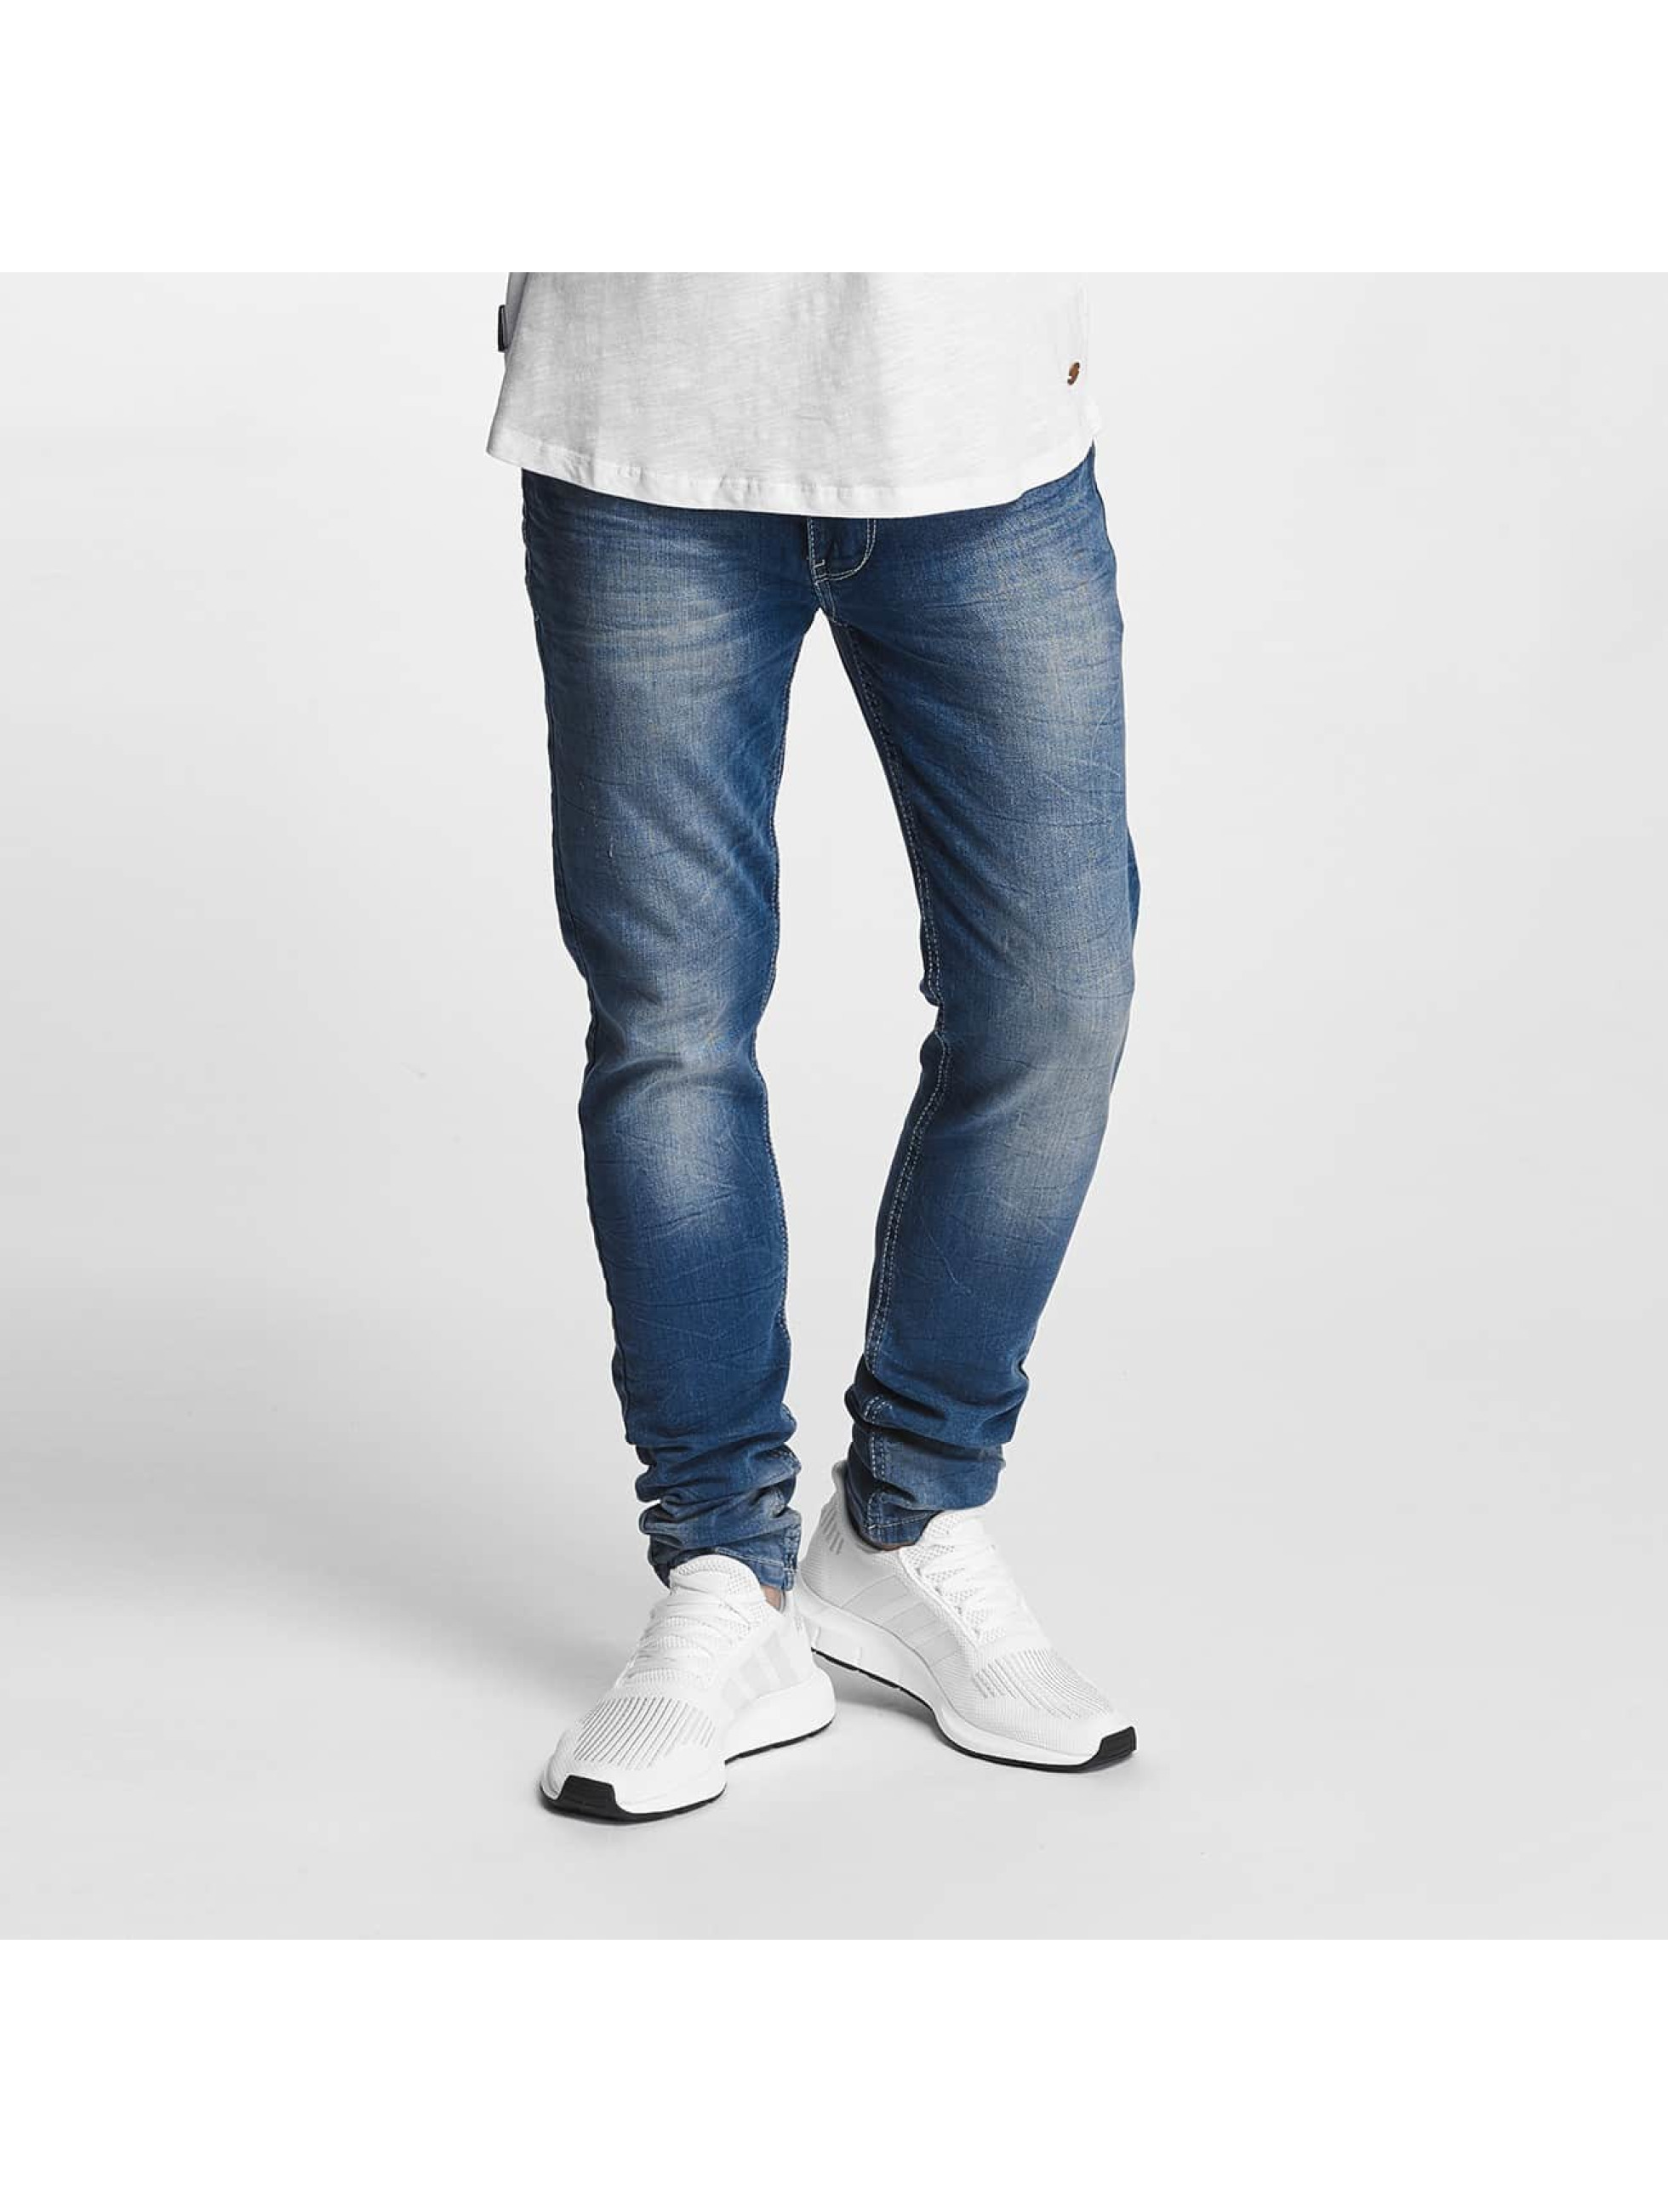 Rocawear / Straight Fit Jeans Pune in blue W 32